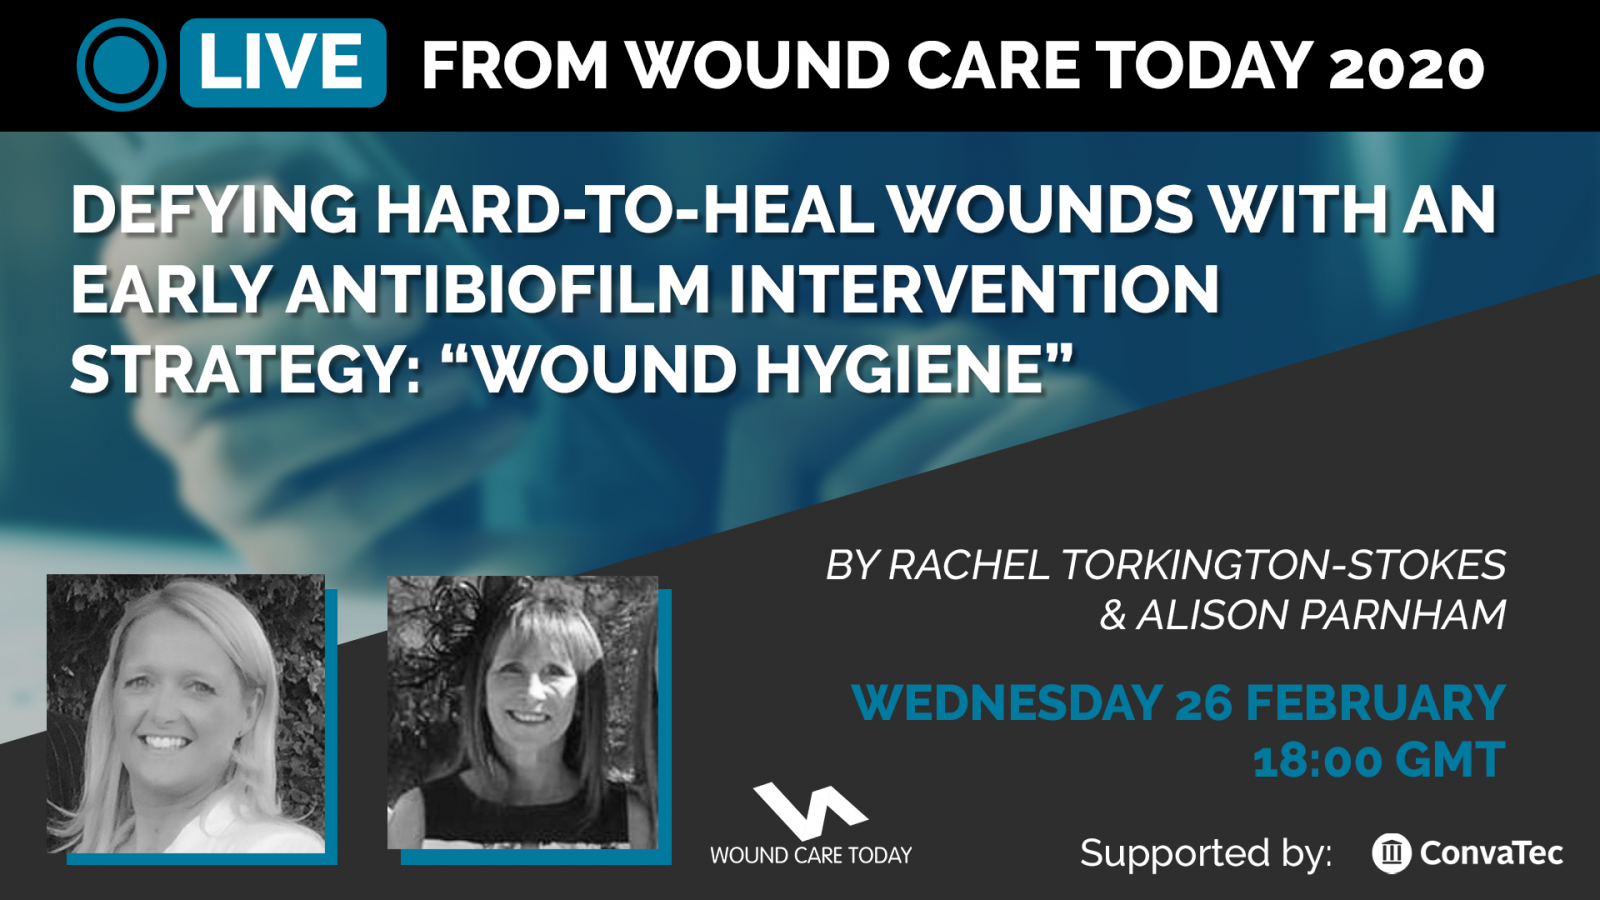 Defying hard-to-heal wounds with an early antibiofilm intervention strategy: Wound hygiene